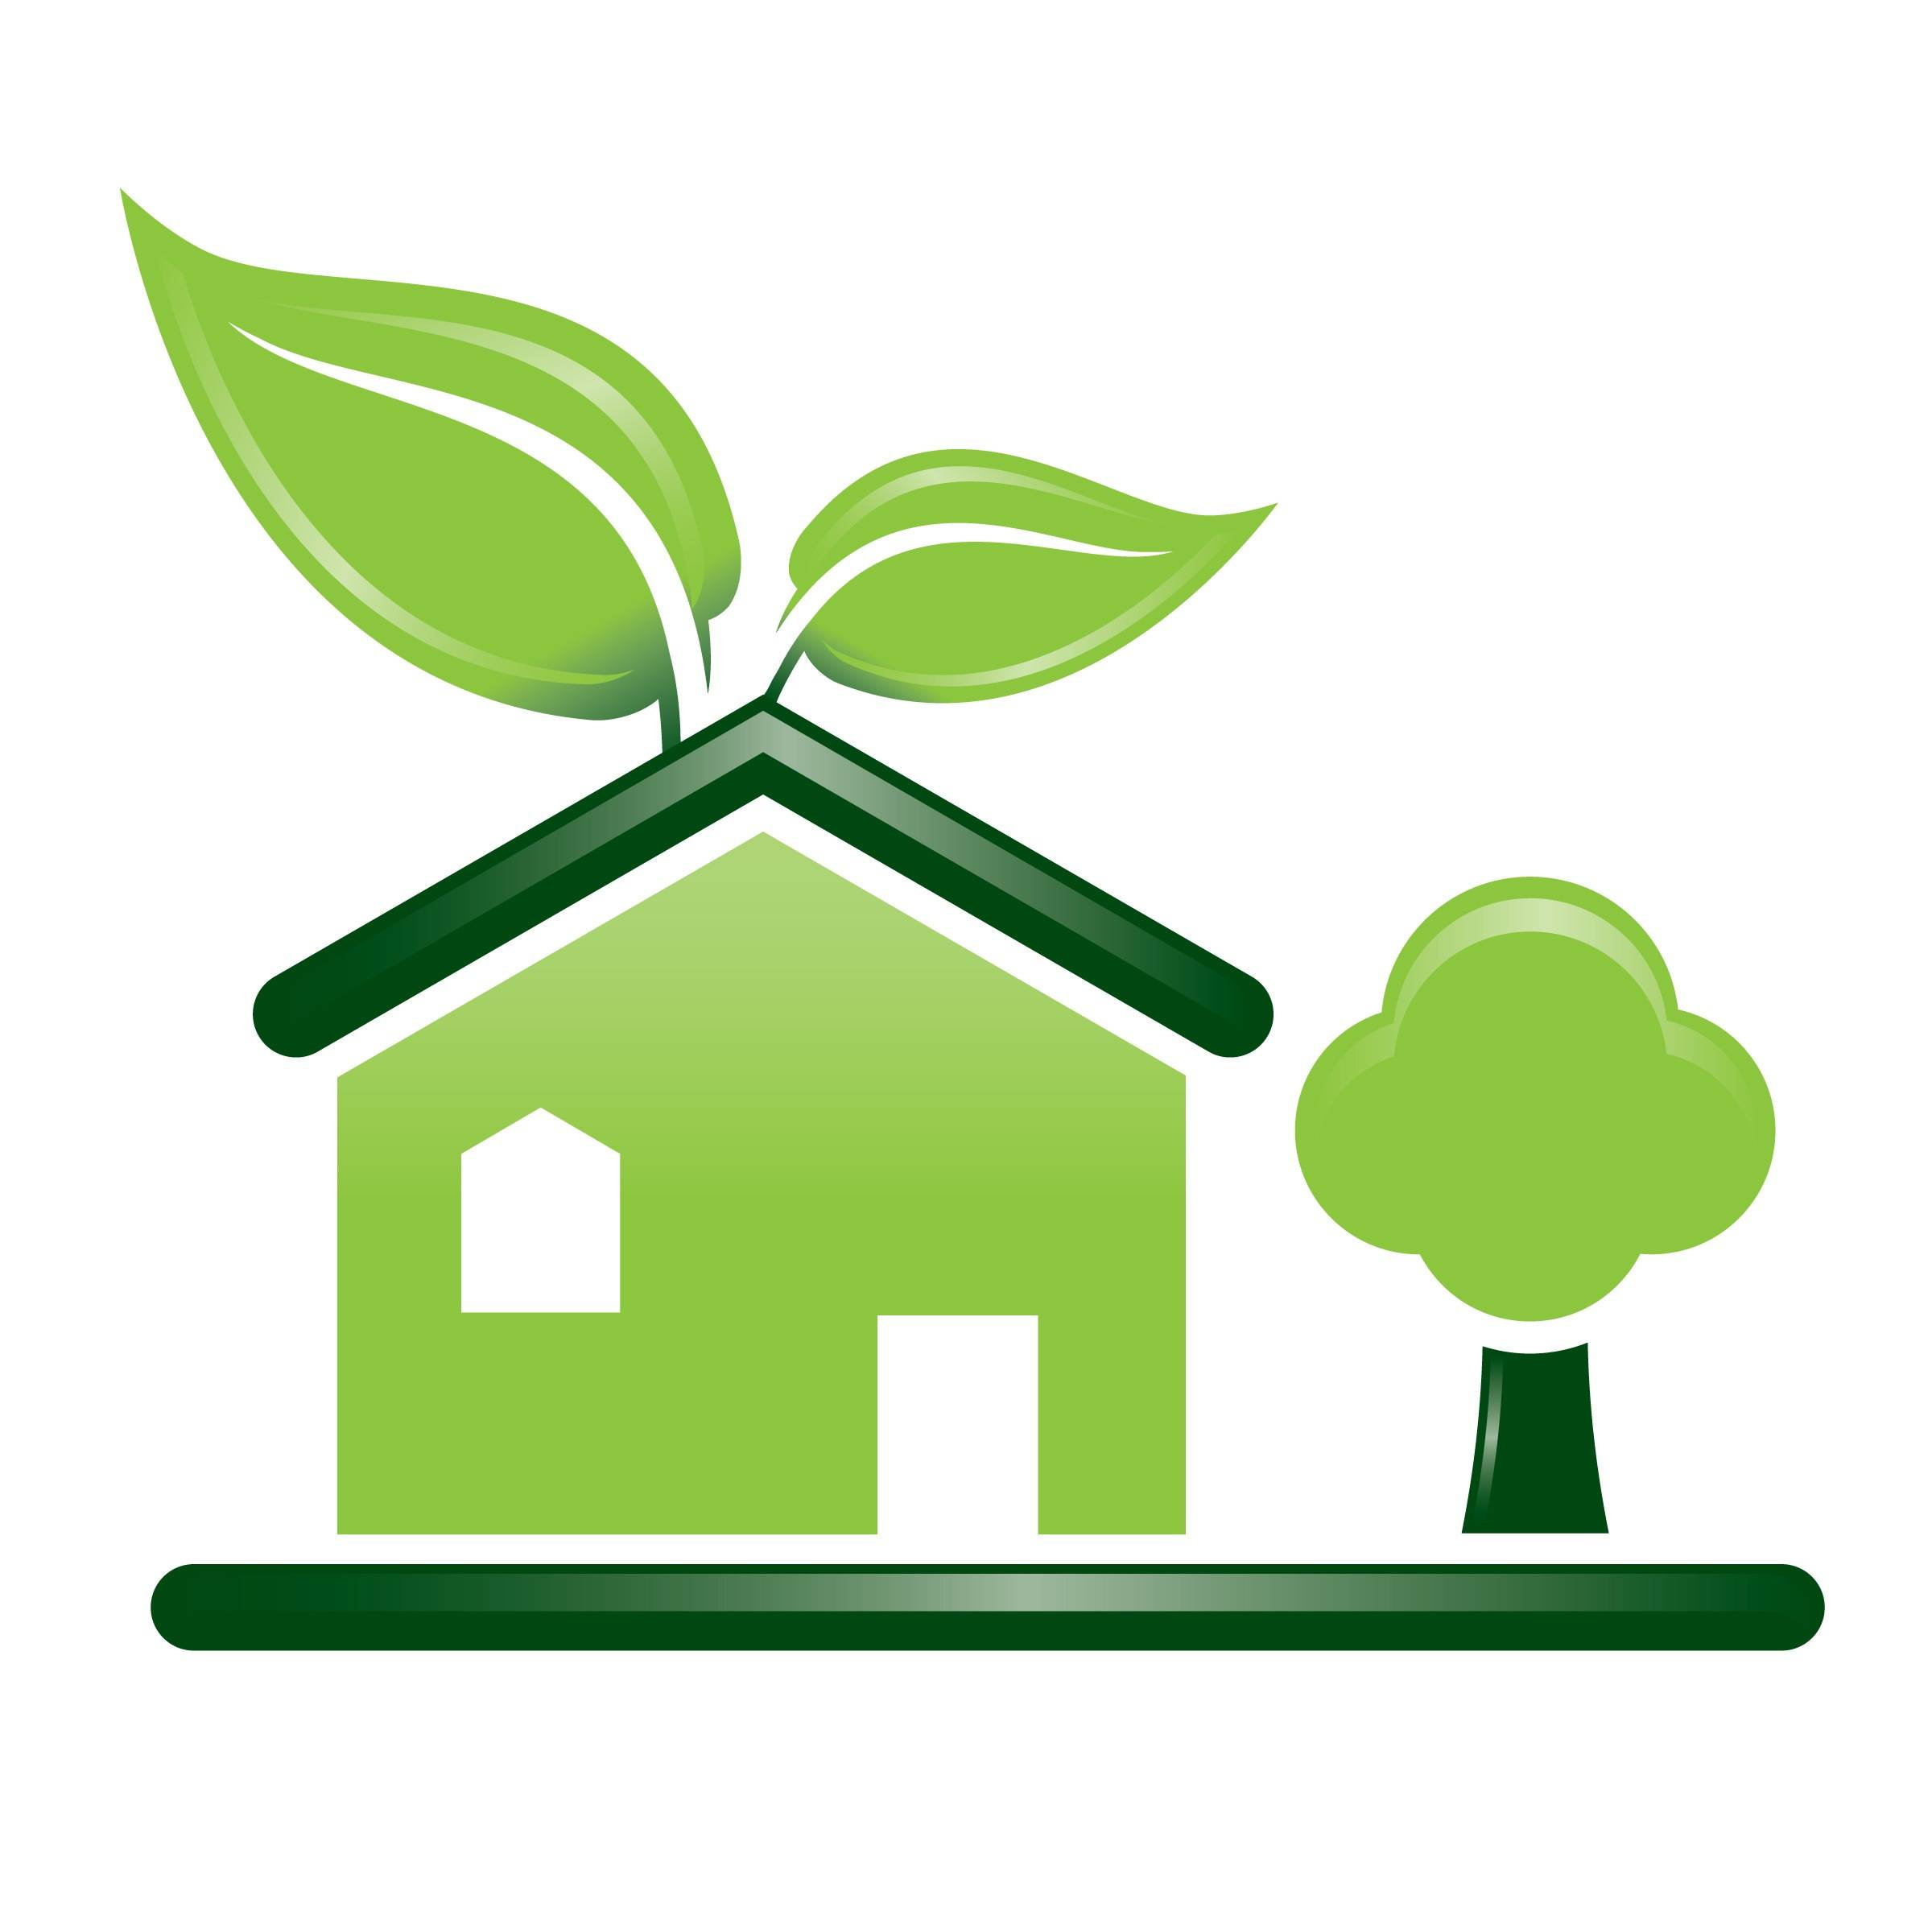 Advantages of Building Green   America    s Best House Plans BlogAdvantages of Building Green